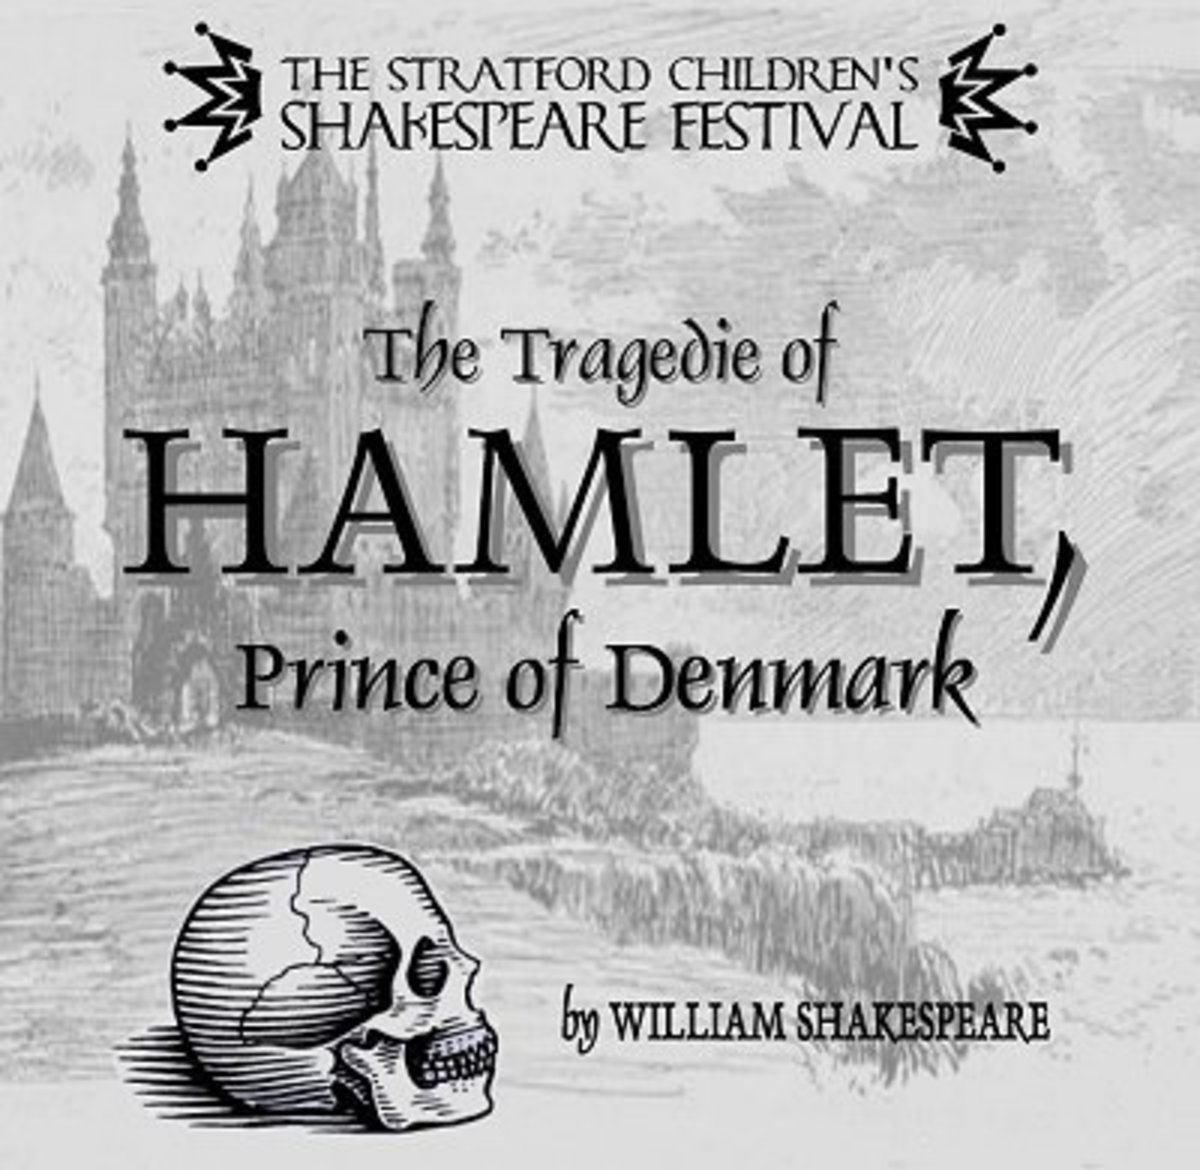 hamlets fourth soliloquy essay Hamlet's sixth soliloquy: original text & summary hamlets fourth soliloquy read the original text with a summary and analysis of the fourth soliloquy (to be.